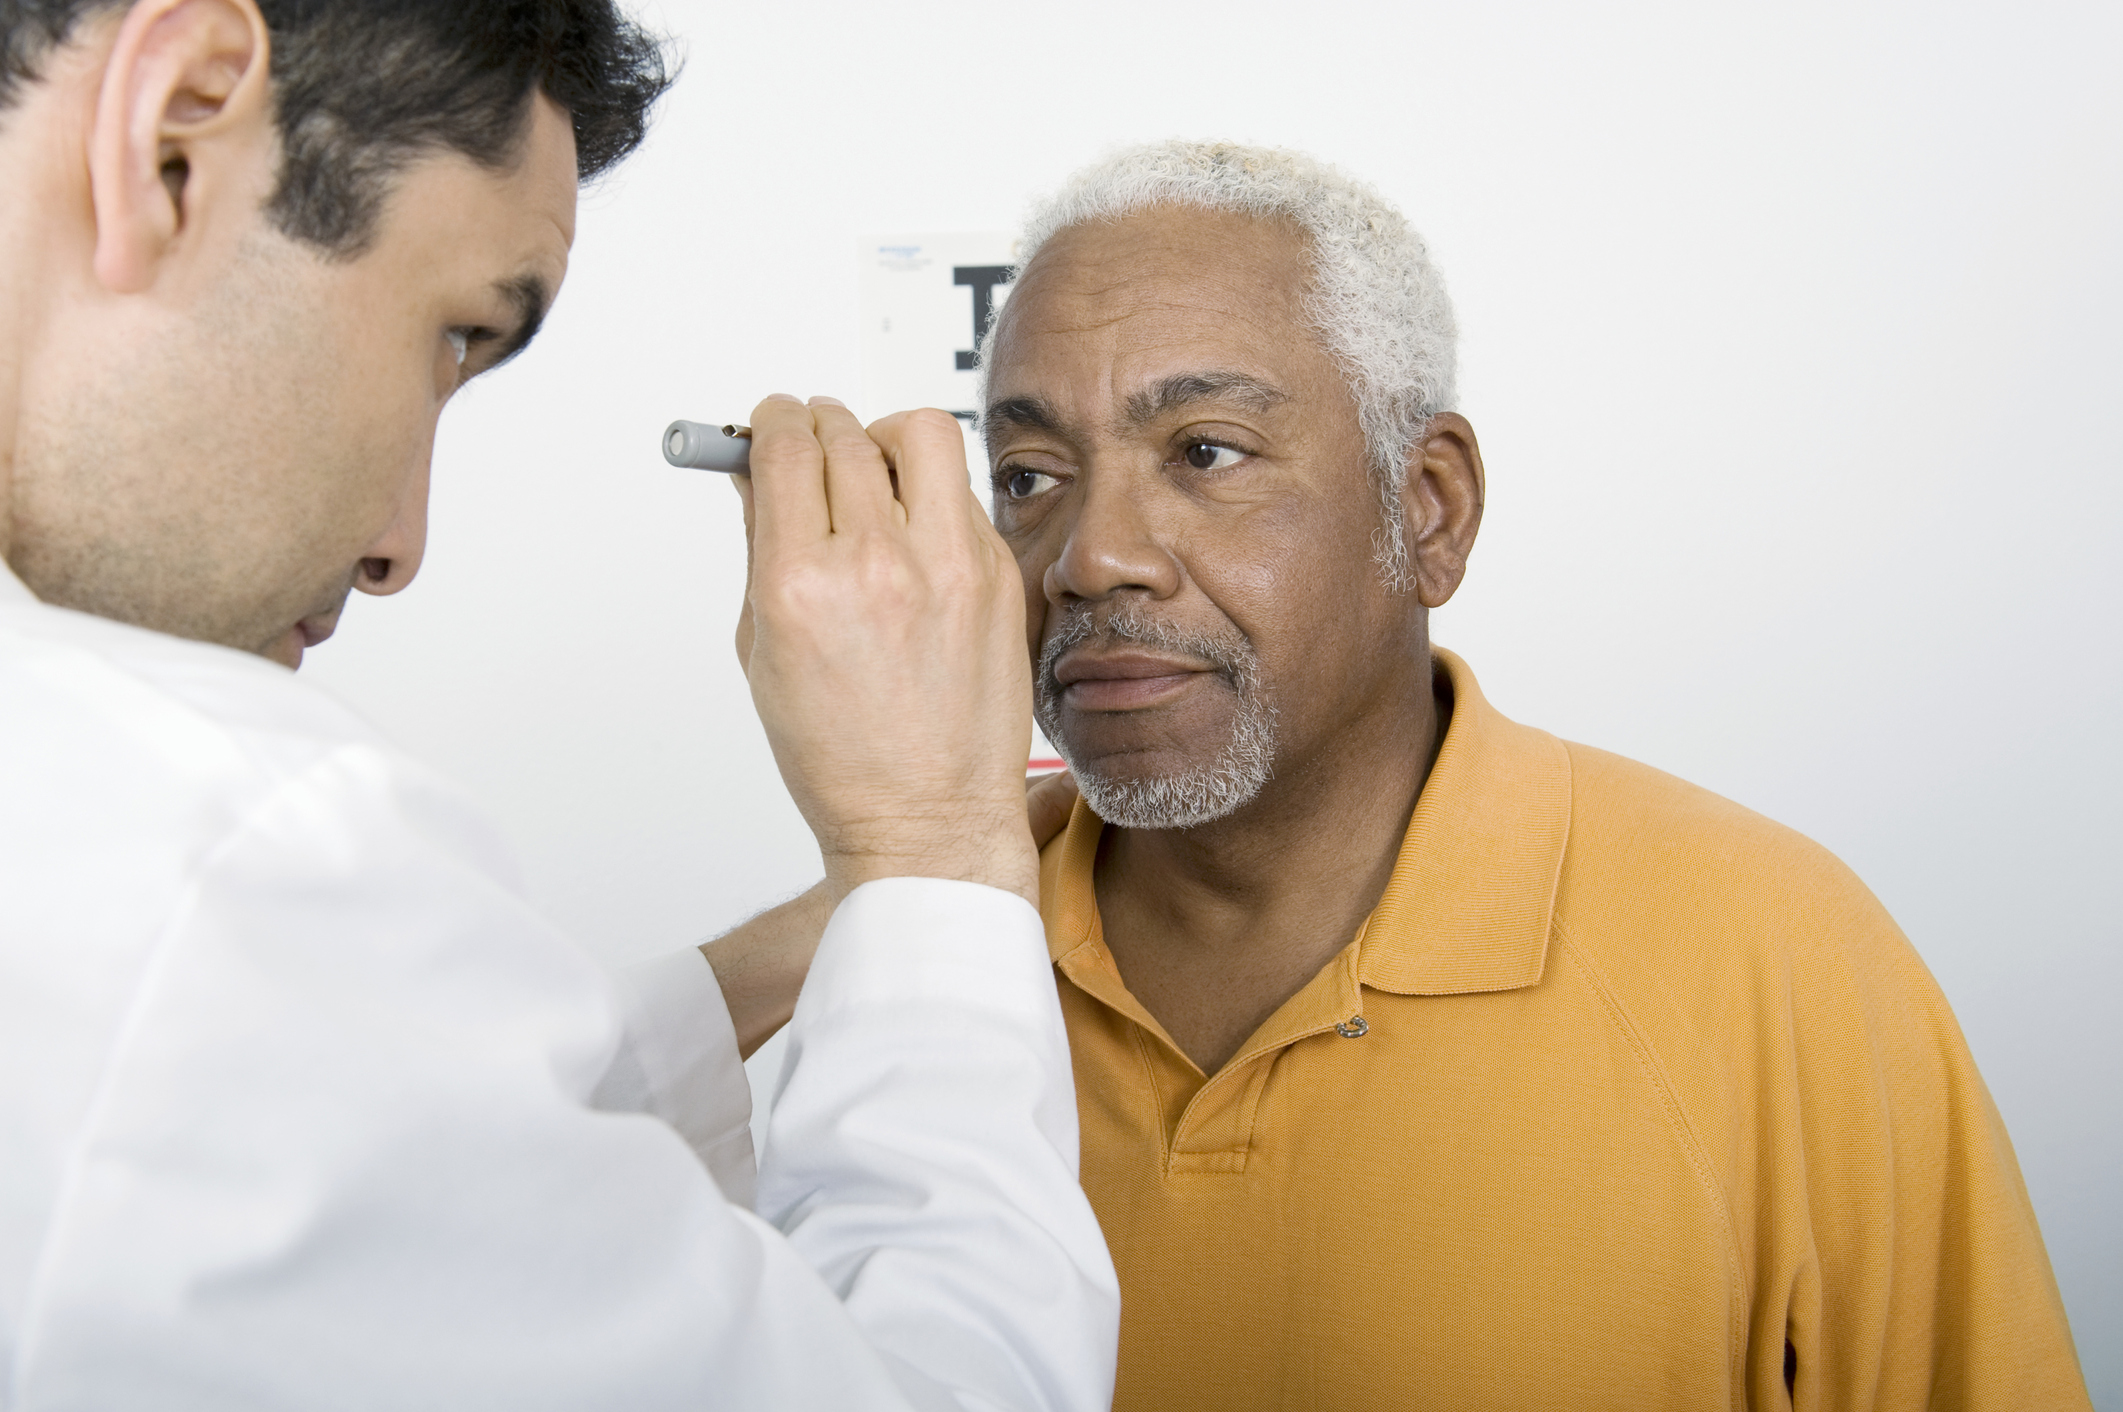 Checking pupils as part of an eye health exam.